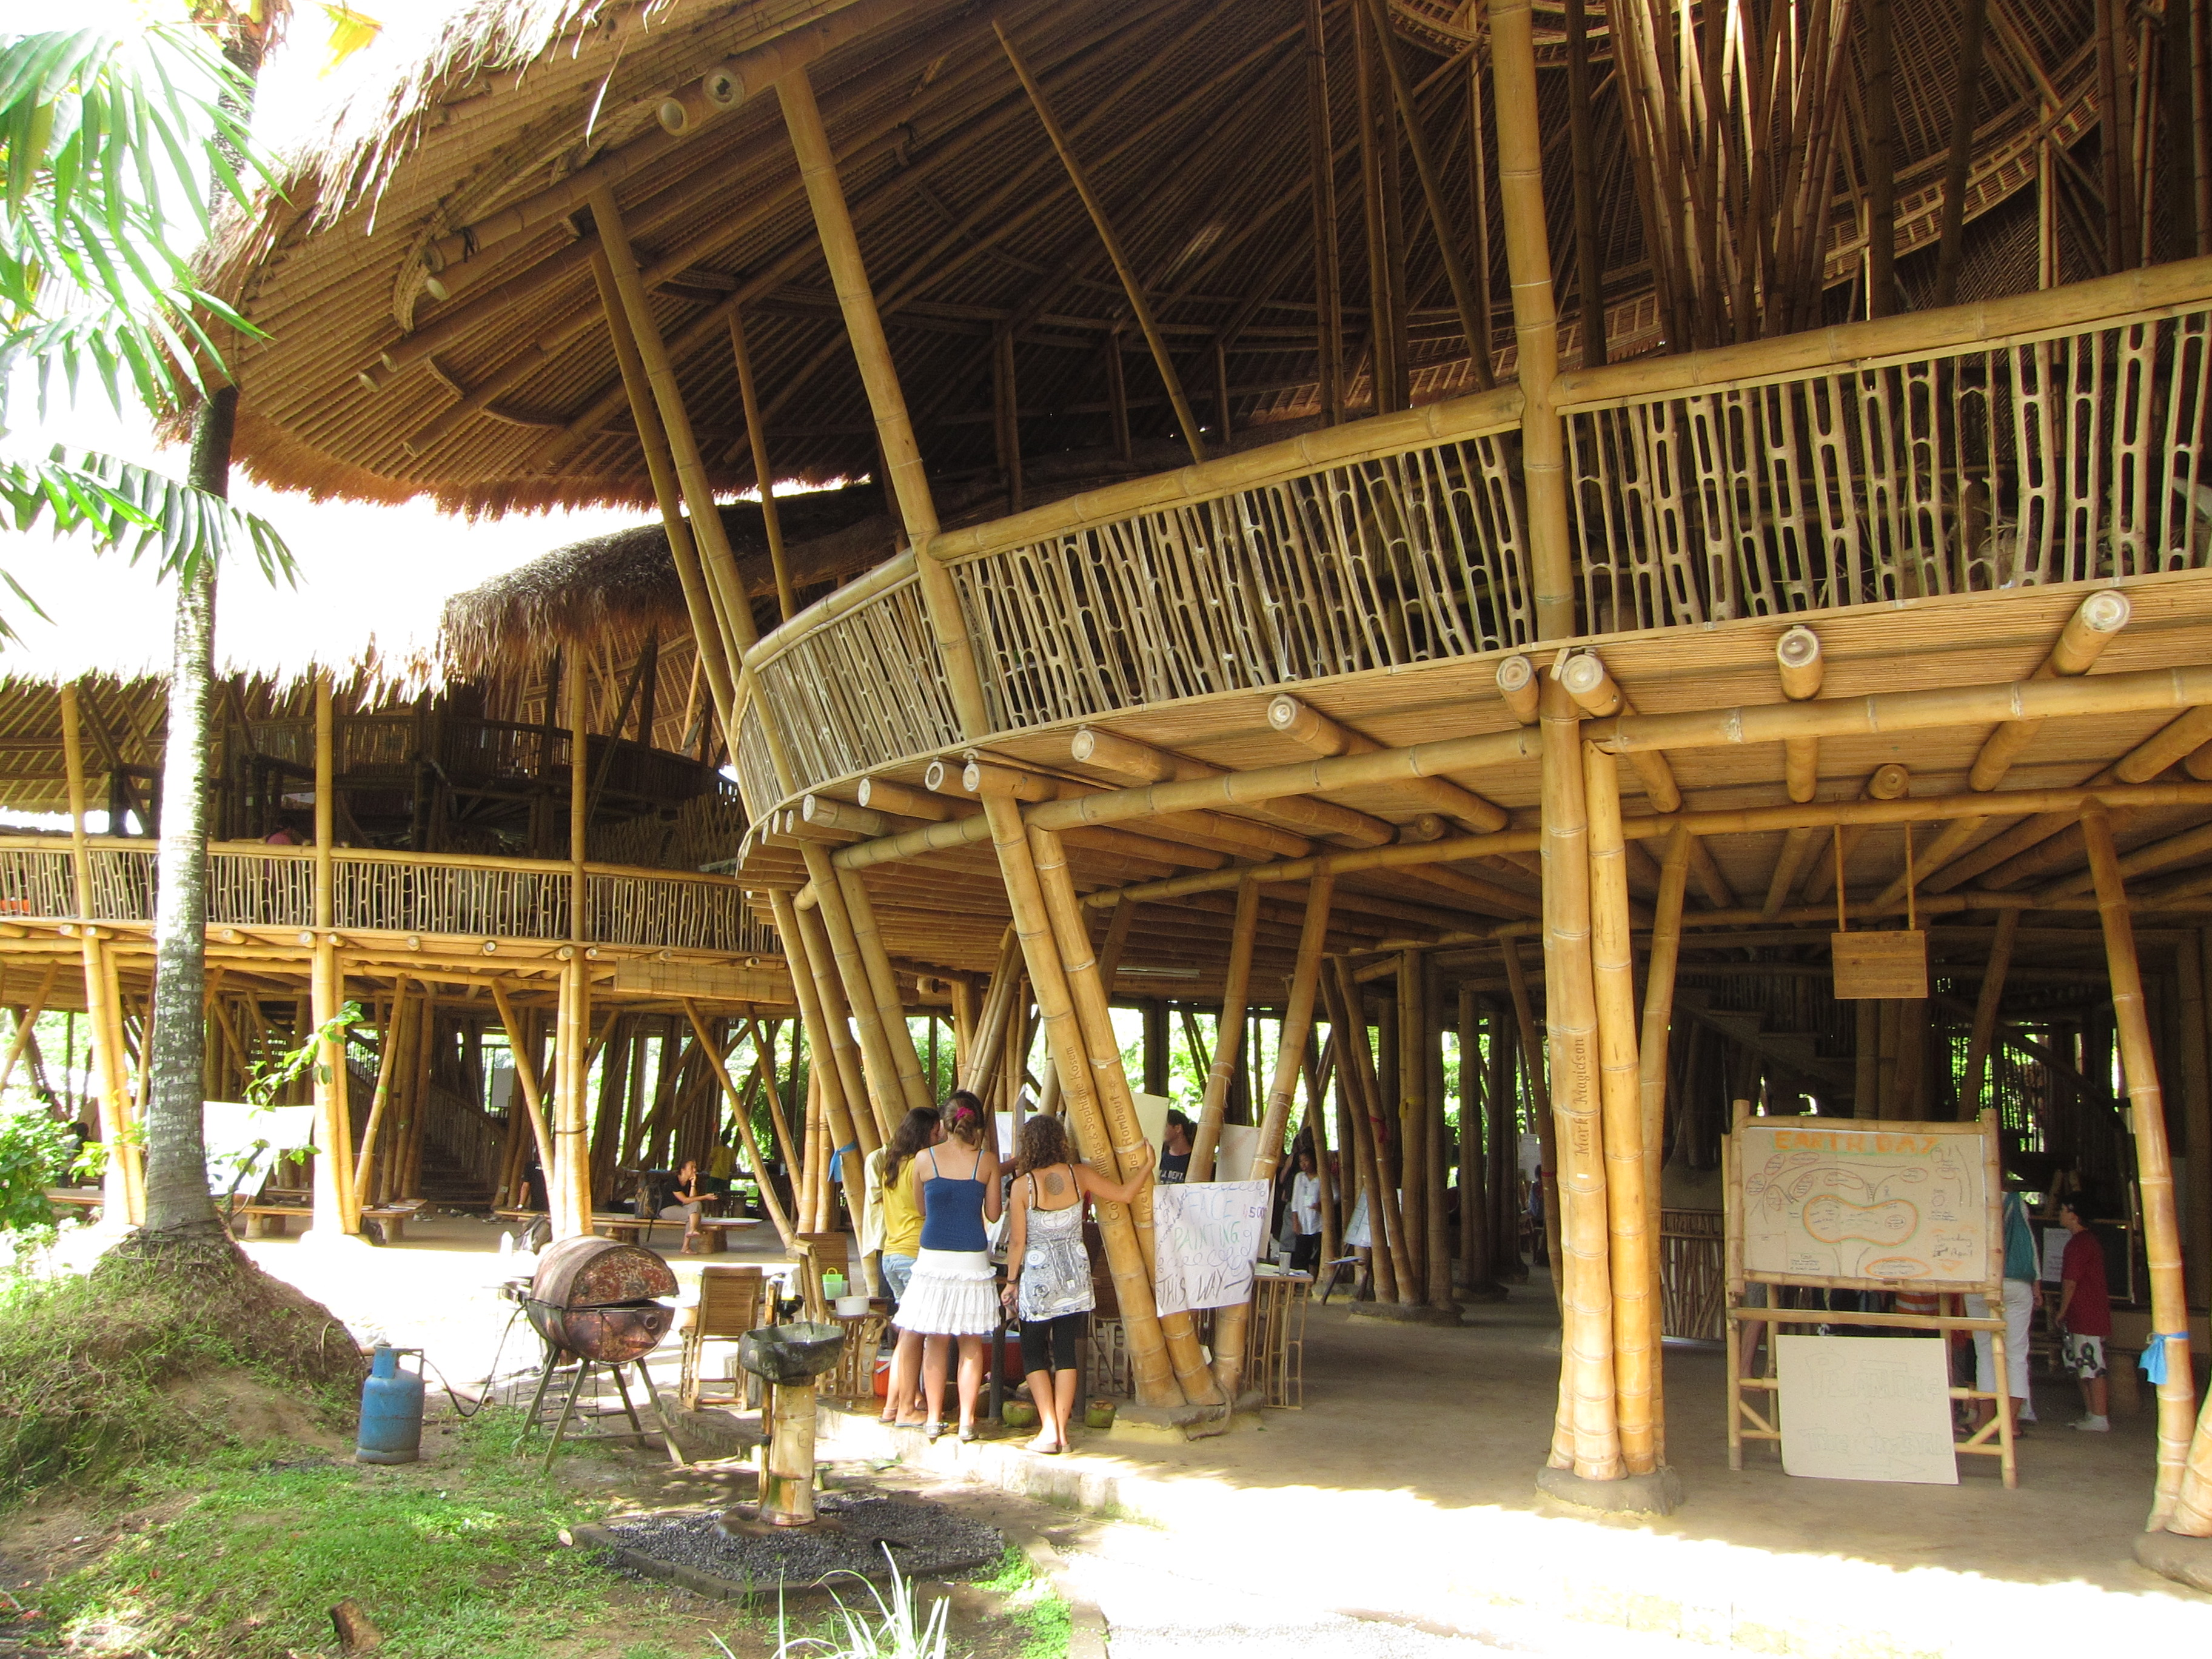 The schools main building and the largest bamboo building in the world. This photo only captures 1/3 of it.